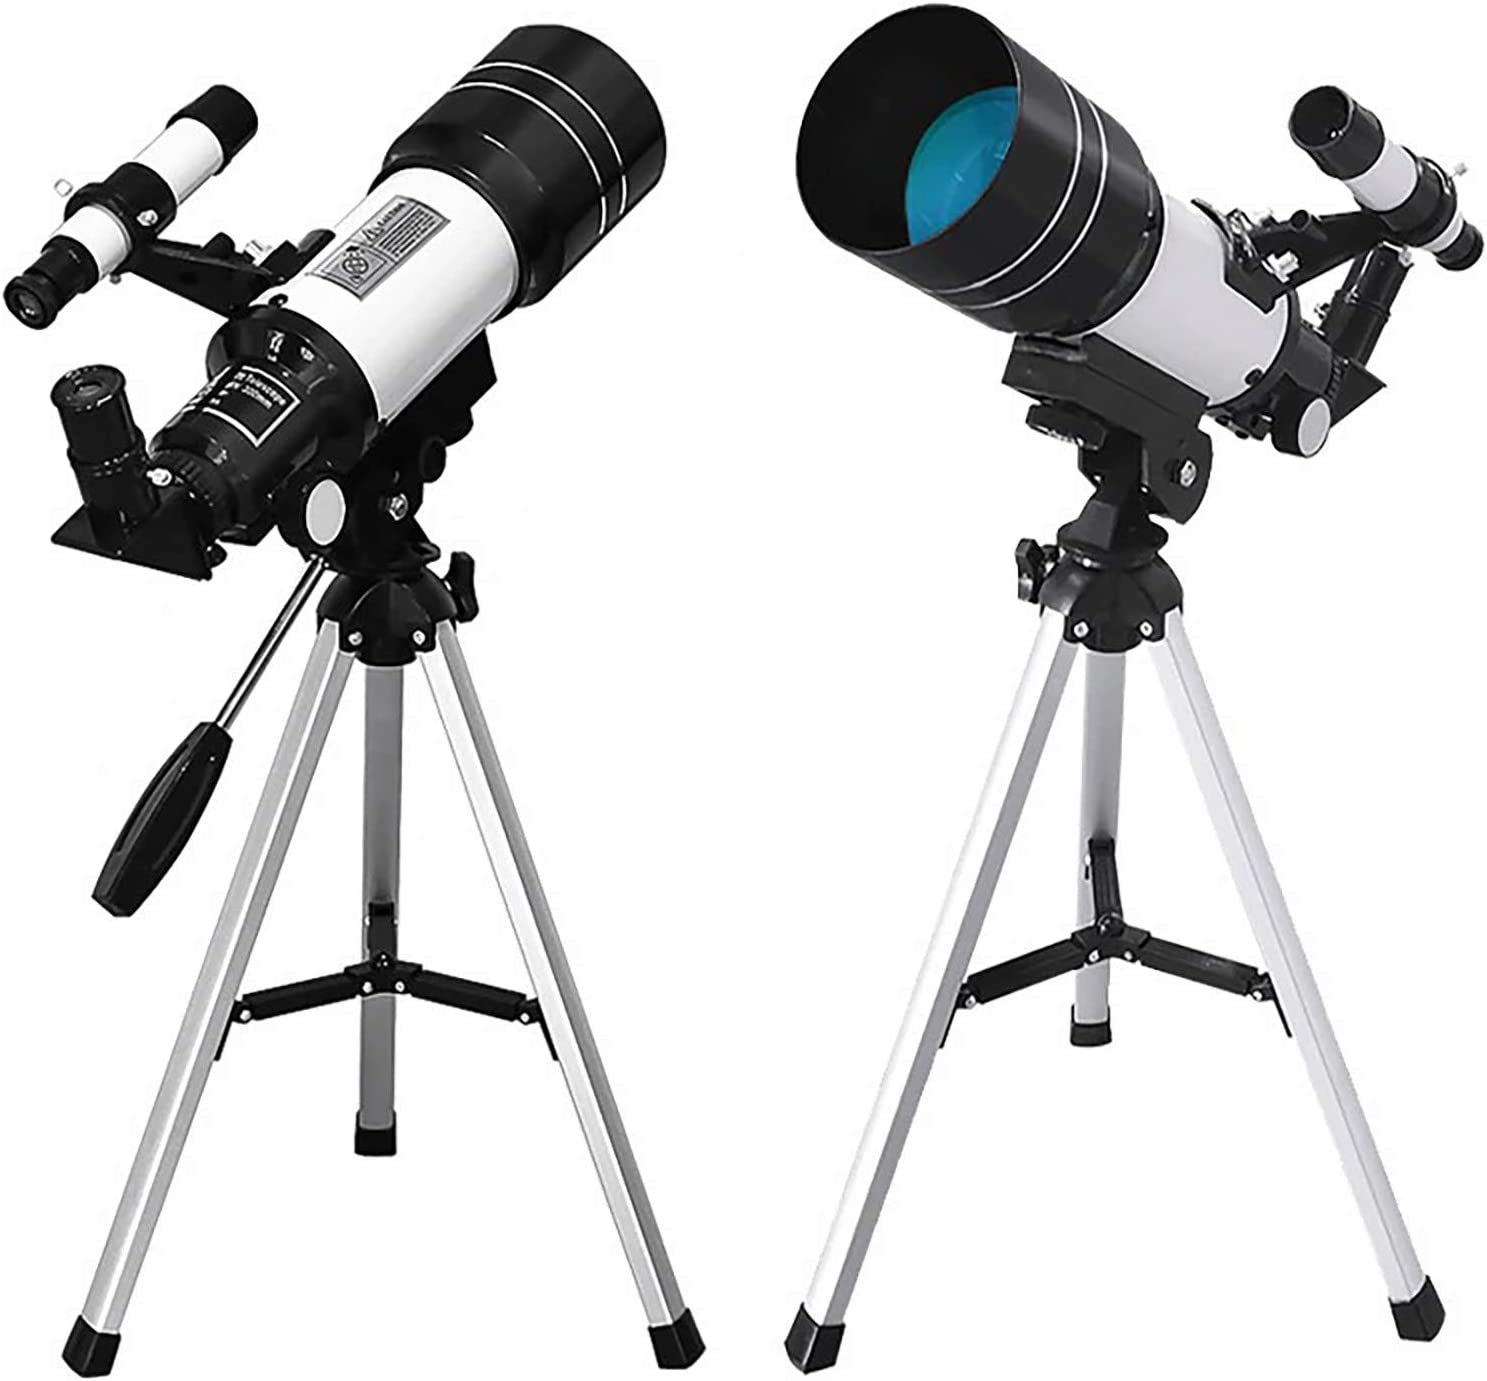 Kanzd Astronomy Telescope for Kids Adults Beginners, 150X Refractor Telescope for Astronomy 70mm Aperture 300mm AZ Astronomical Refractor Travel Telescope